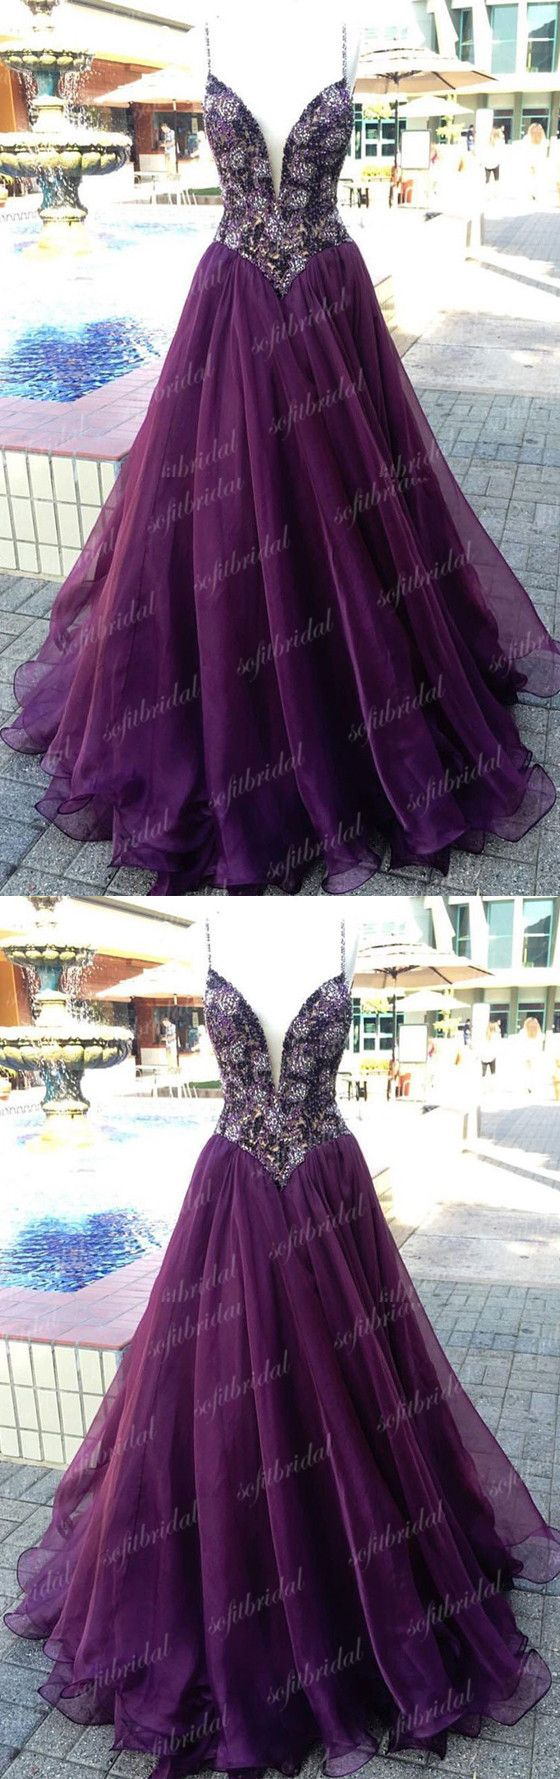 best prom dresses images on pinterest formal dresses formal